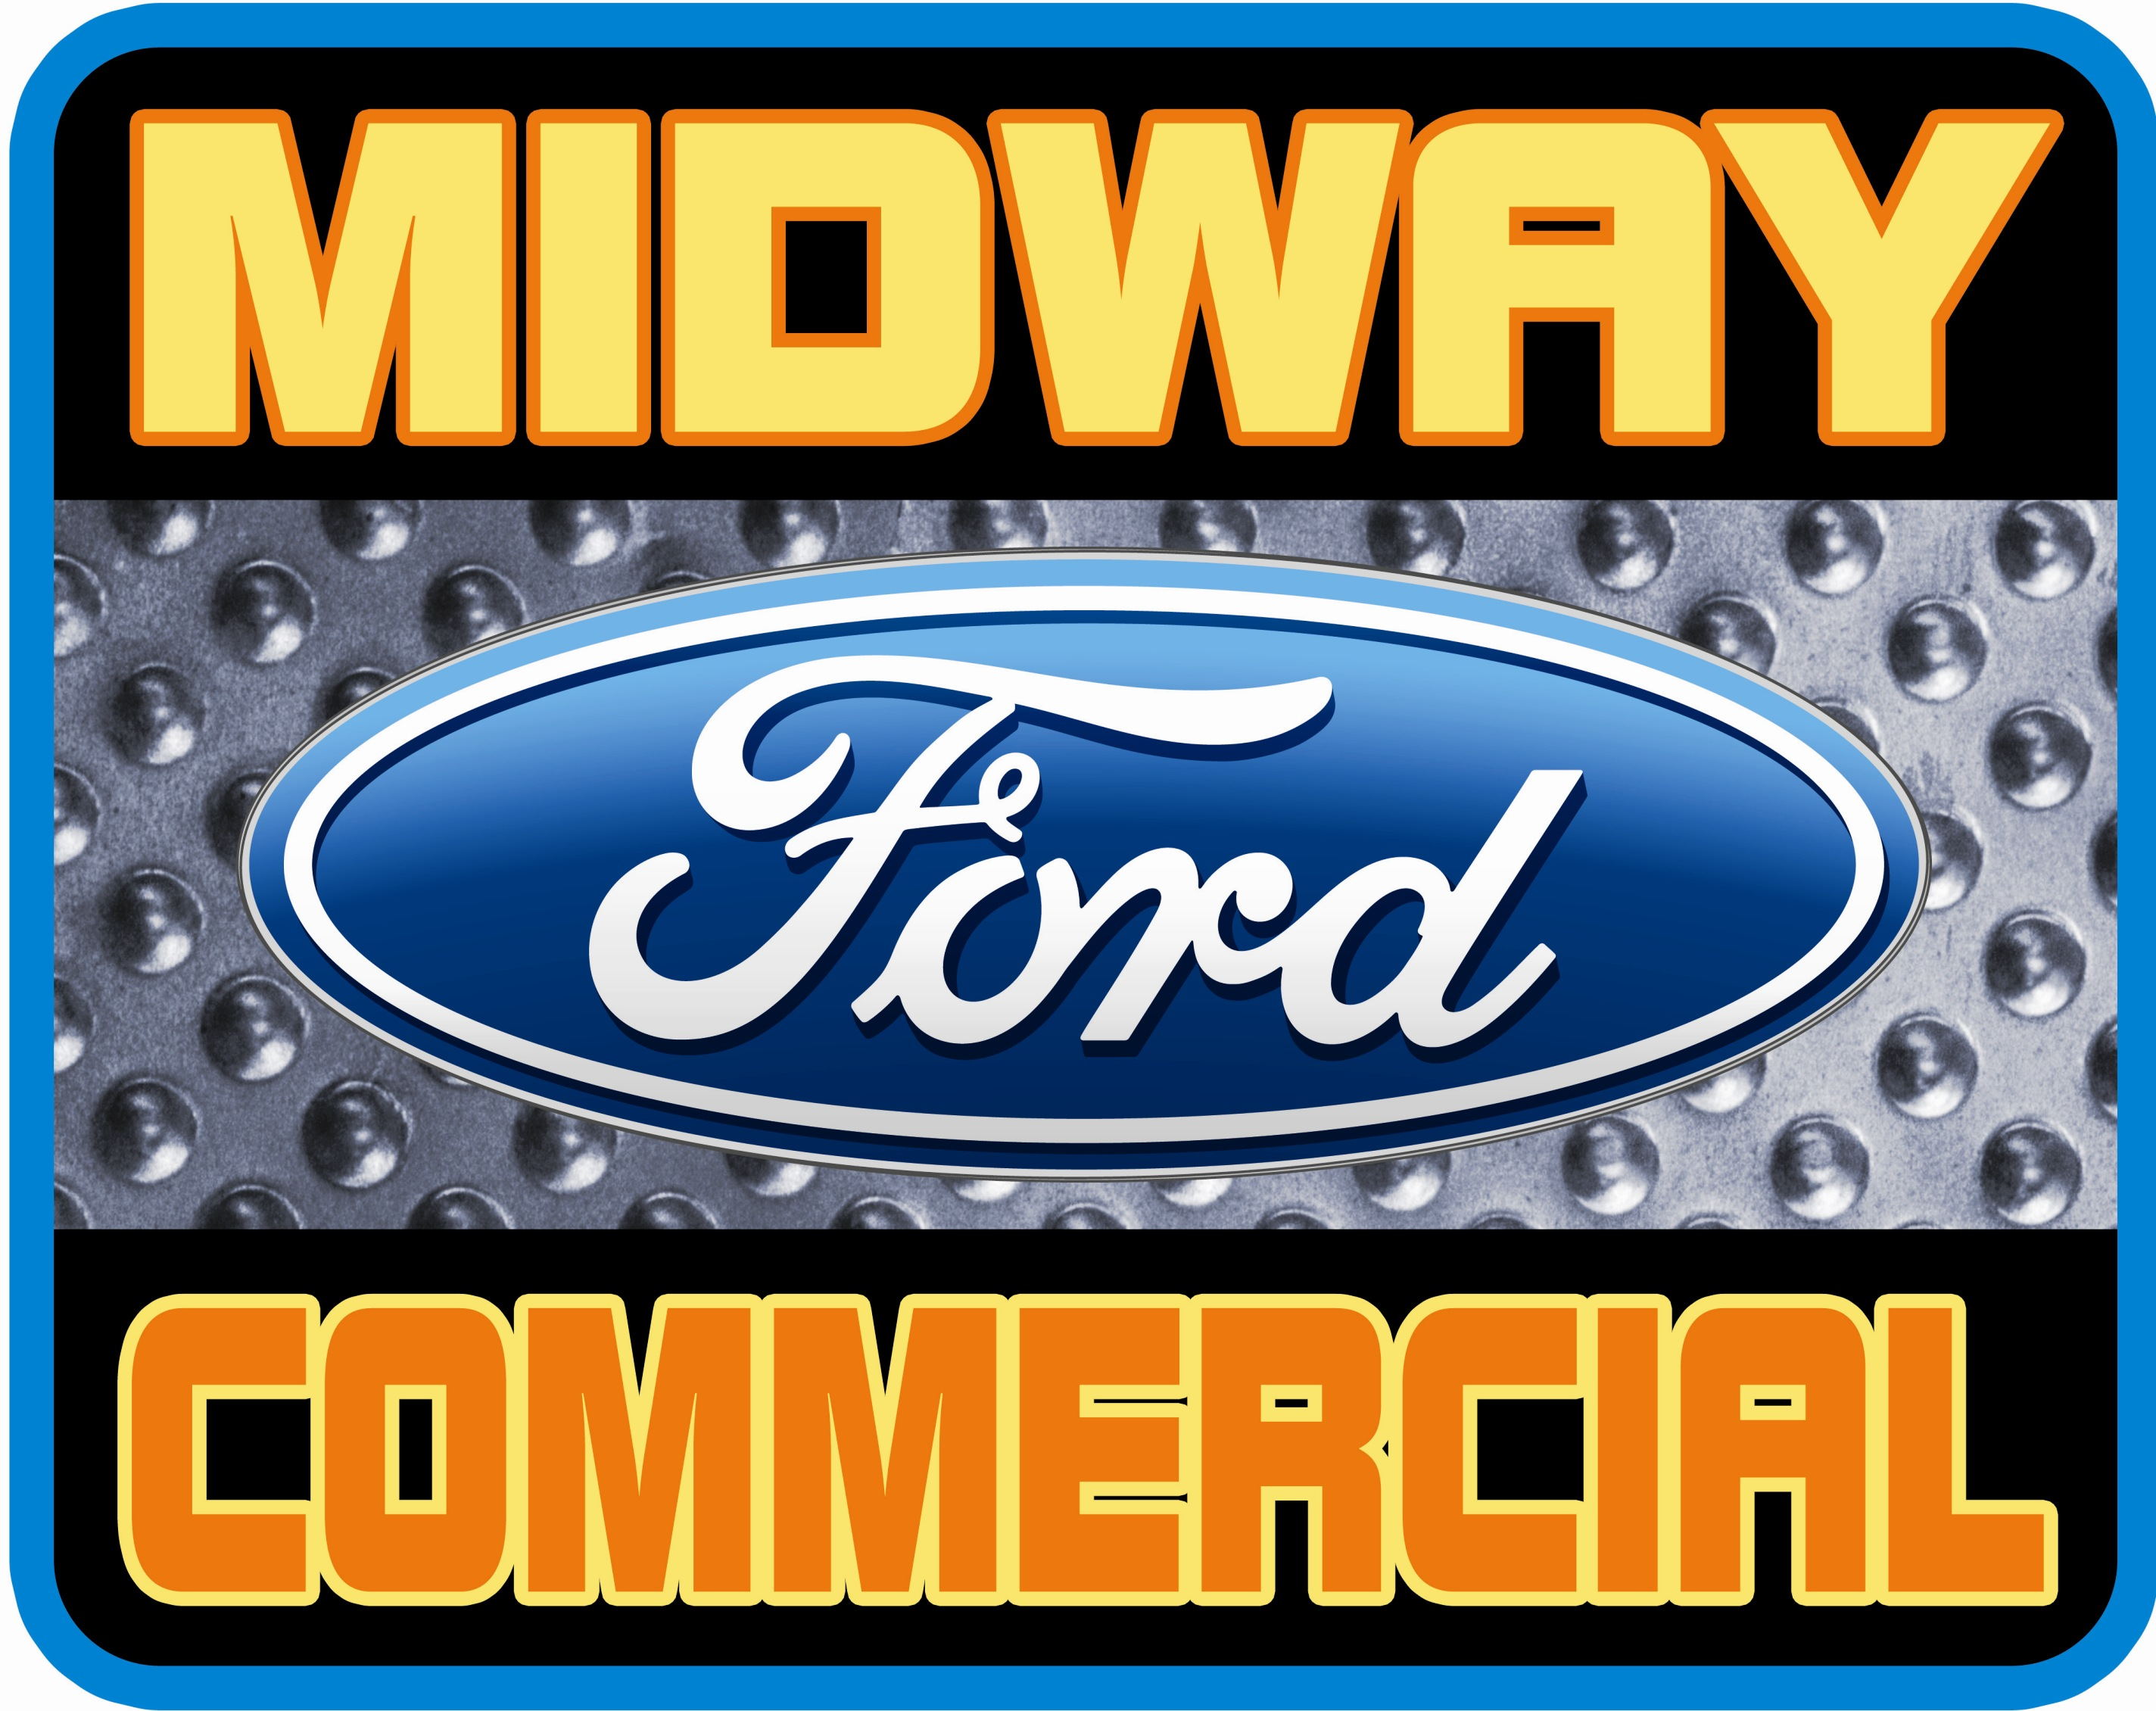 Midway Ford Commercial Logo